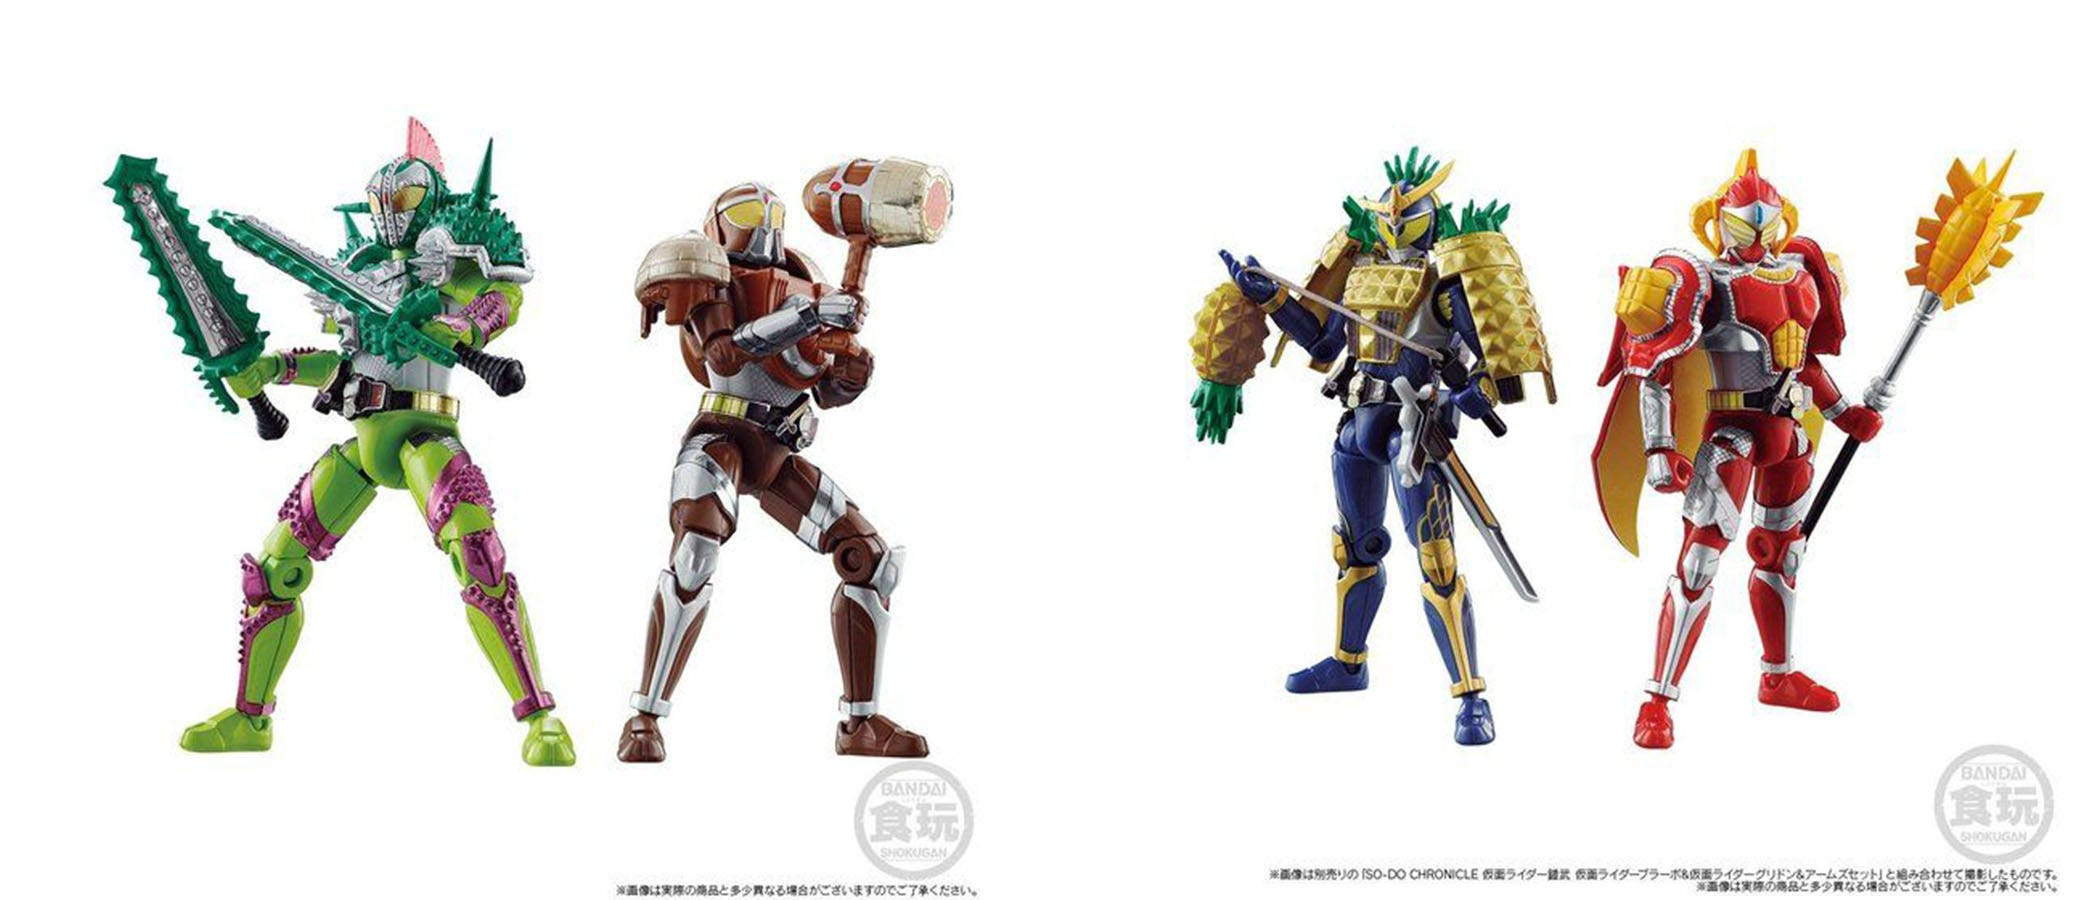 Premium Bandai USA Offers Kamen Rider from Shokugan